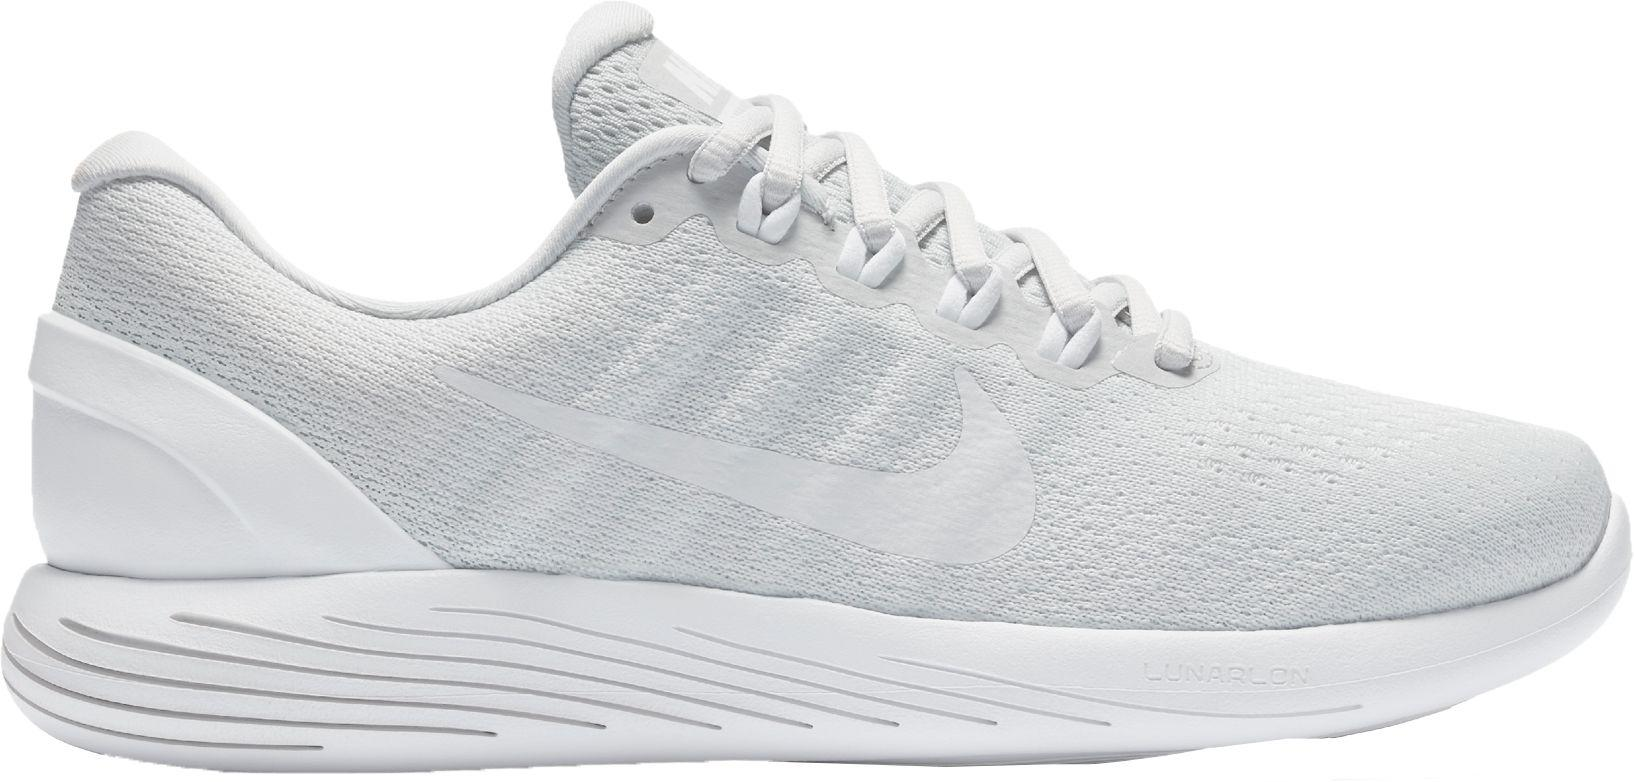 ceb94ab2a7b Lyst - Nike Lunarglide 9 Running Shoes in White for Men